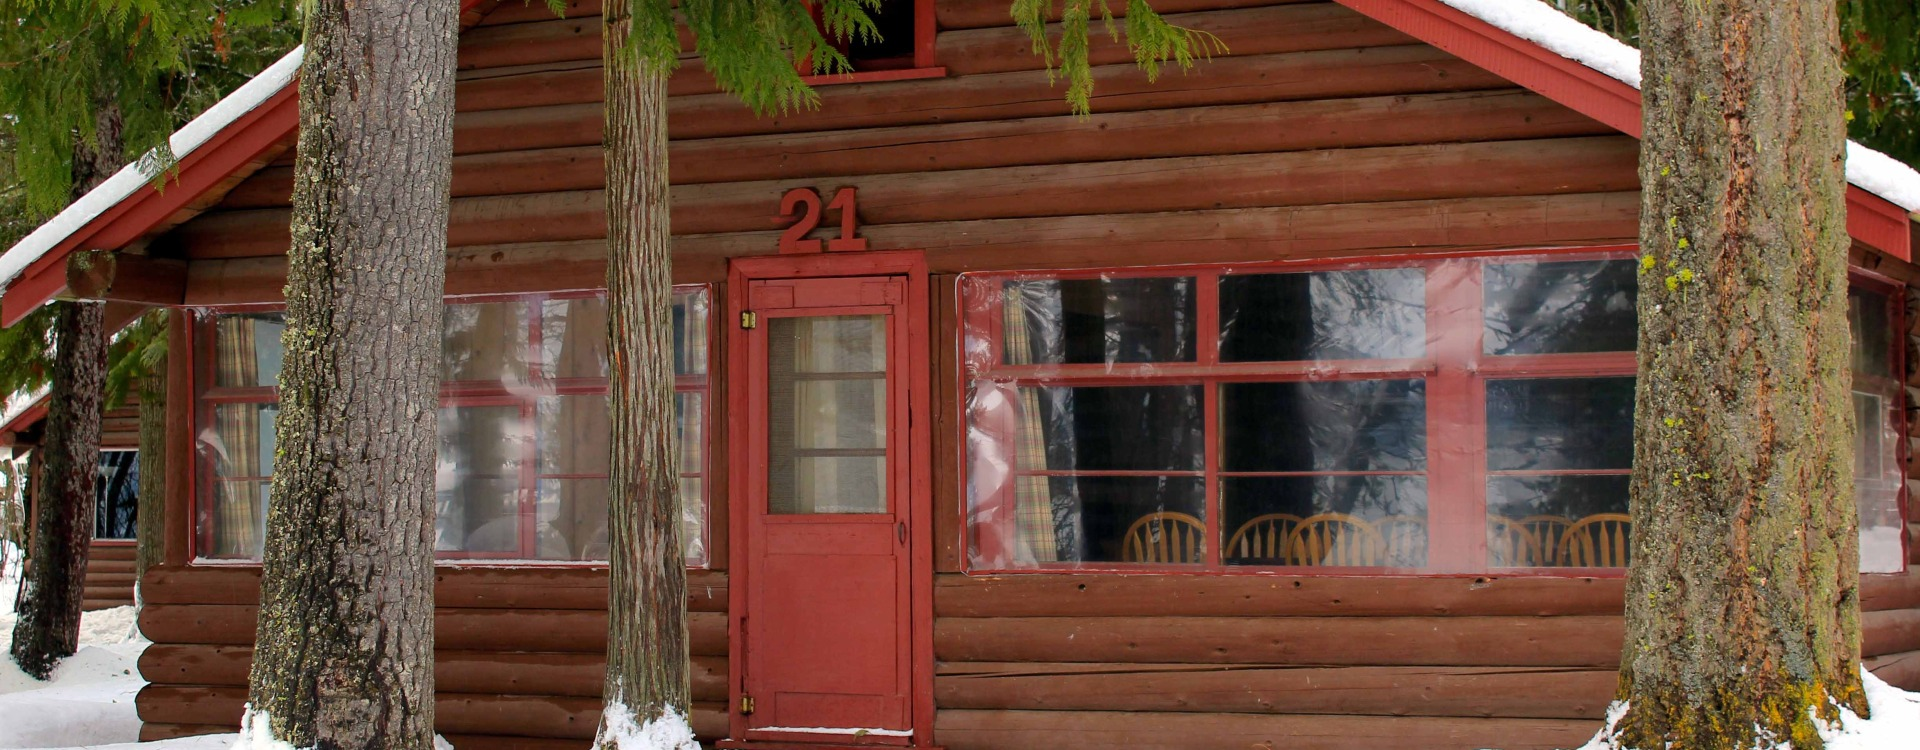 Our cabins at Elkins Resort are especially cozy with a fresh coat of snow